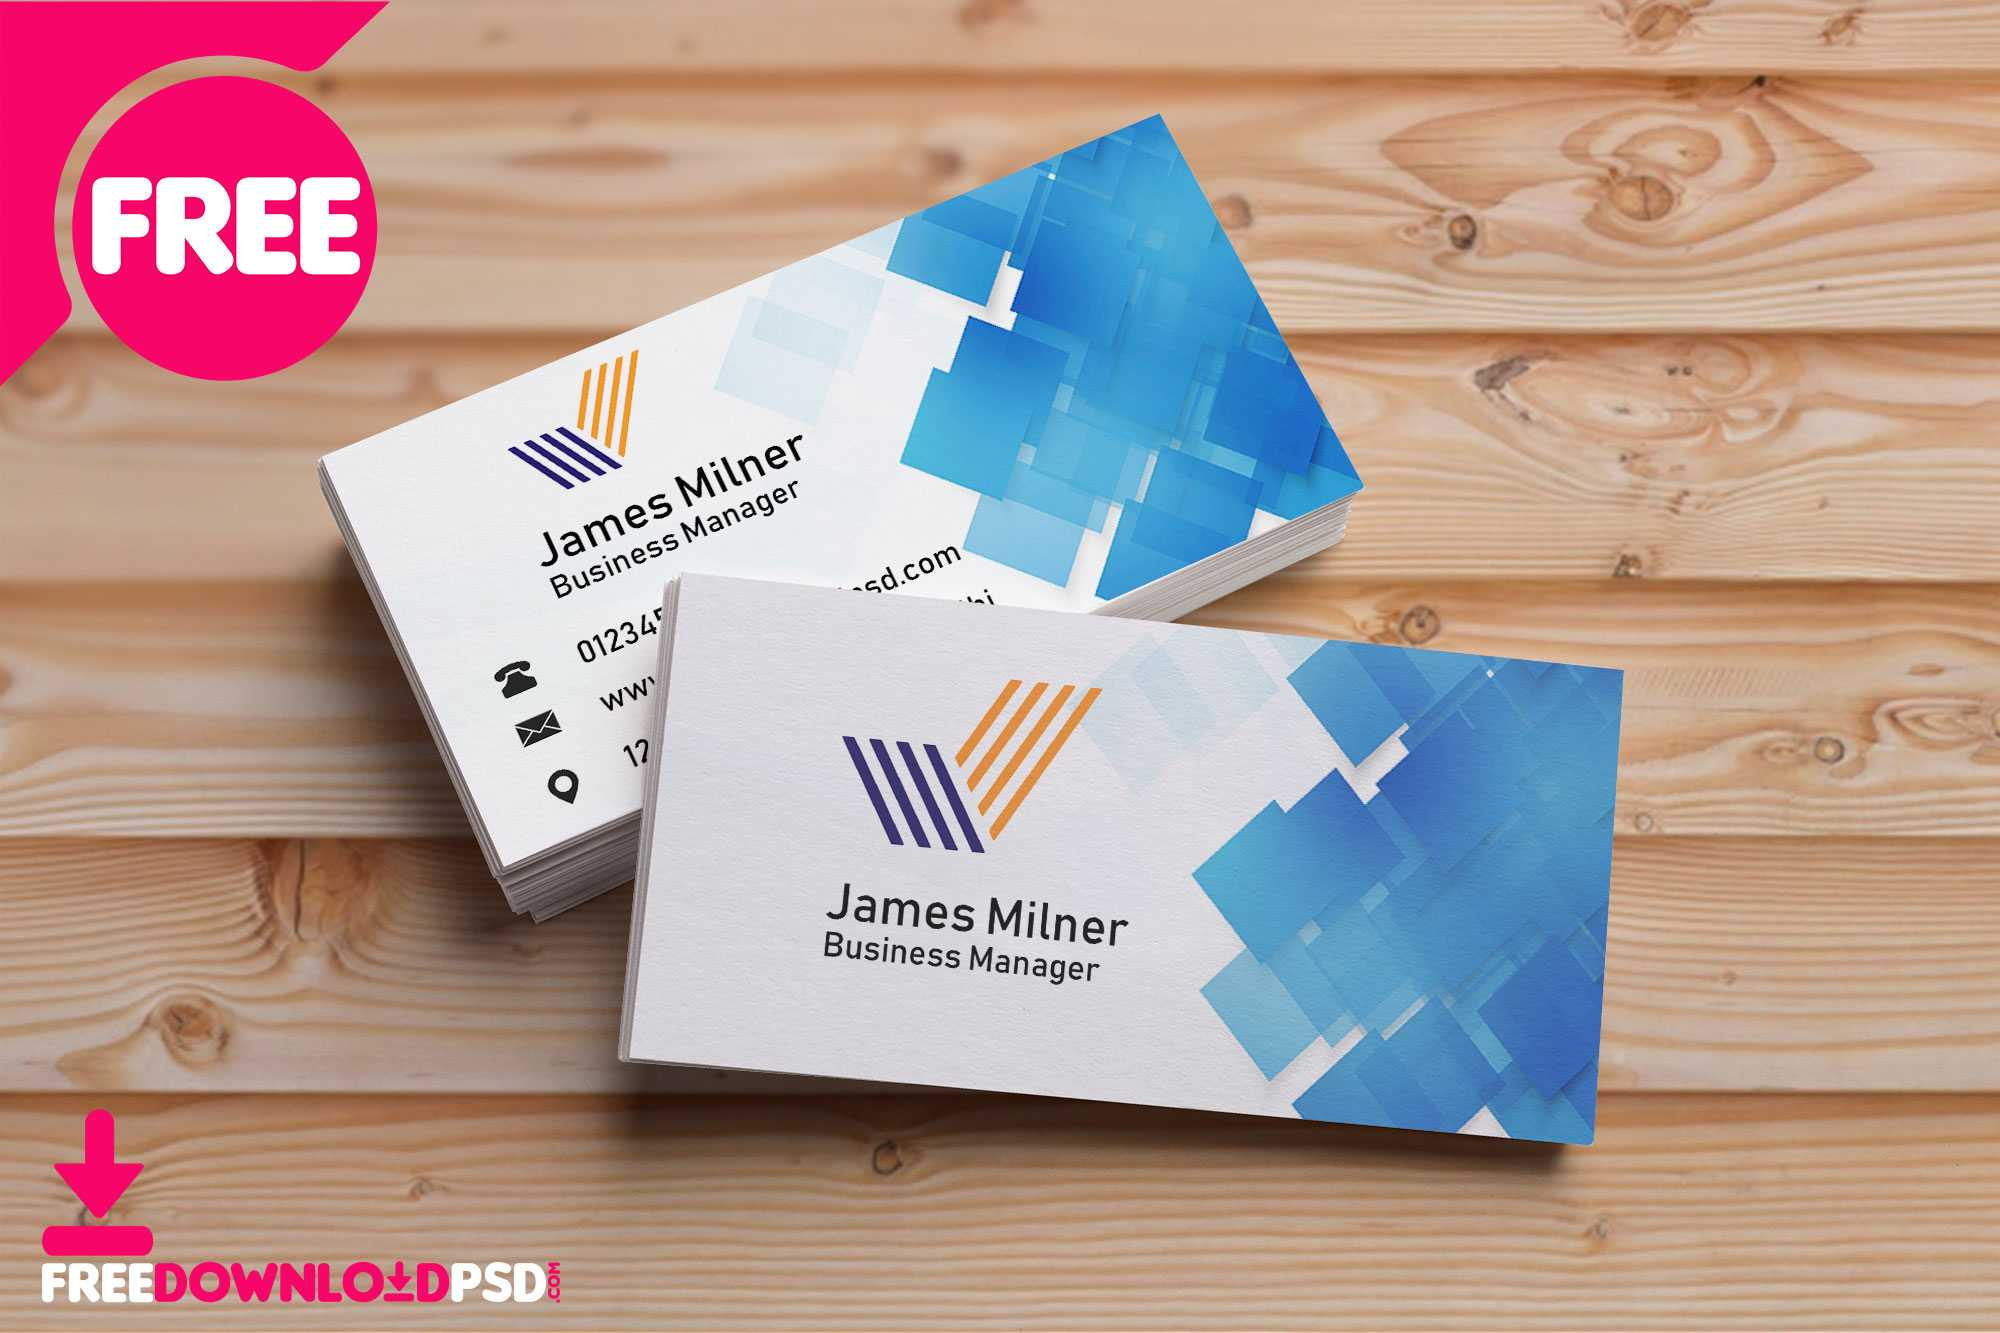 019 Office Business Card Template Phenomenal Ideas Officemax Regarding Office Max Business Card Template